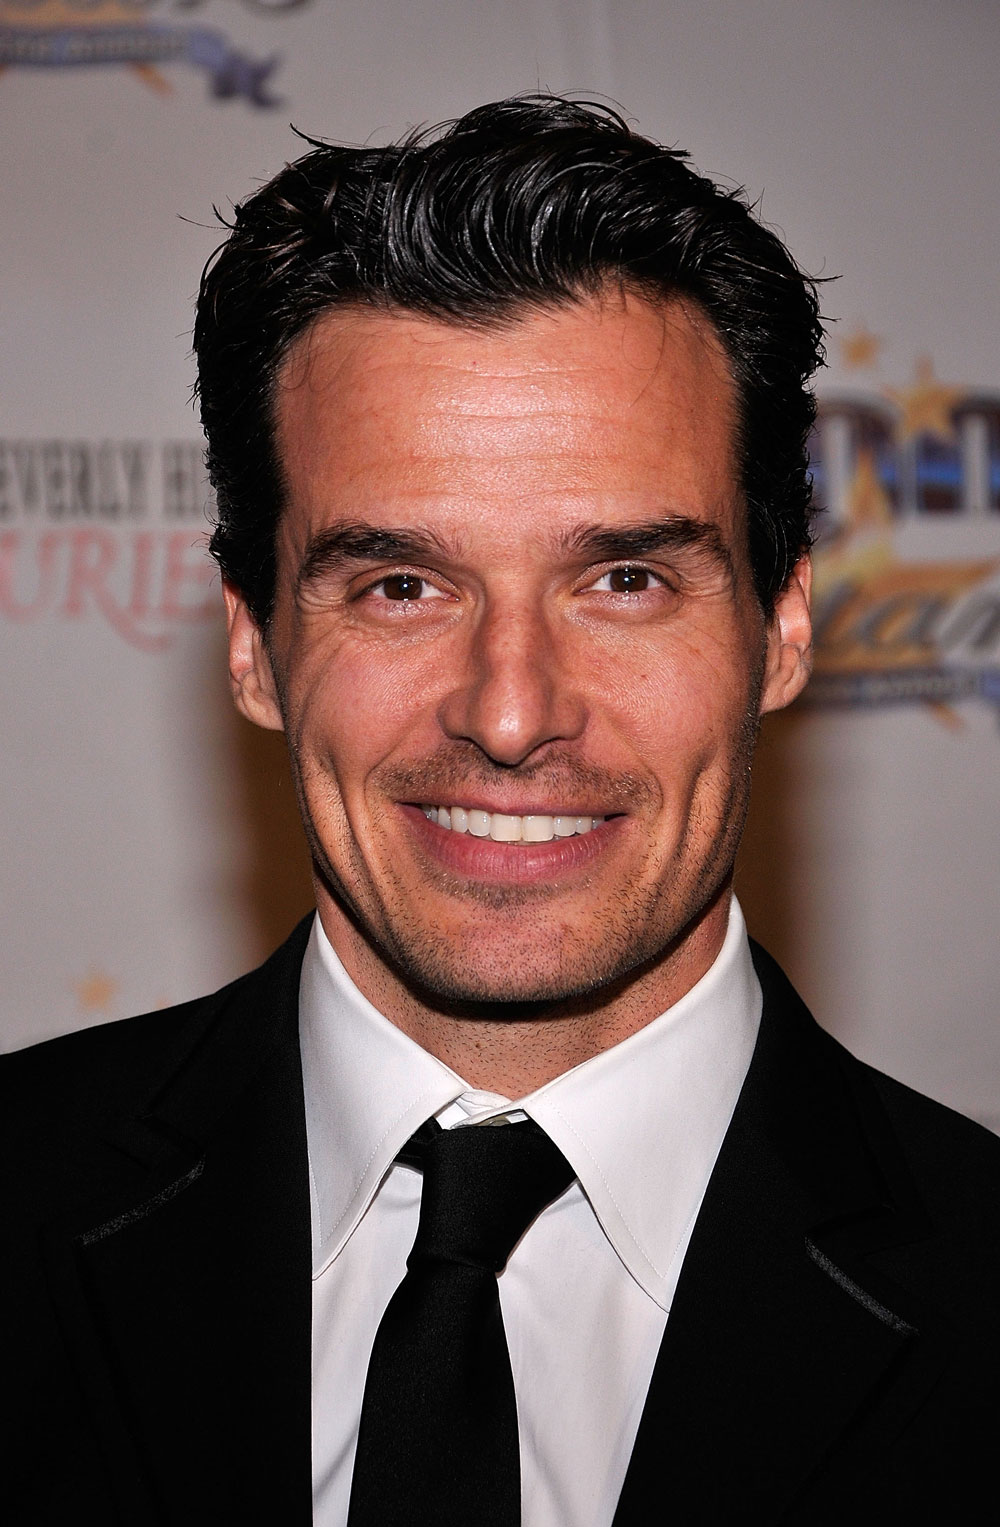 antonio_sabato_jr